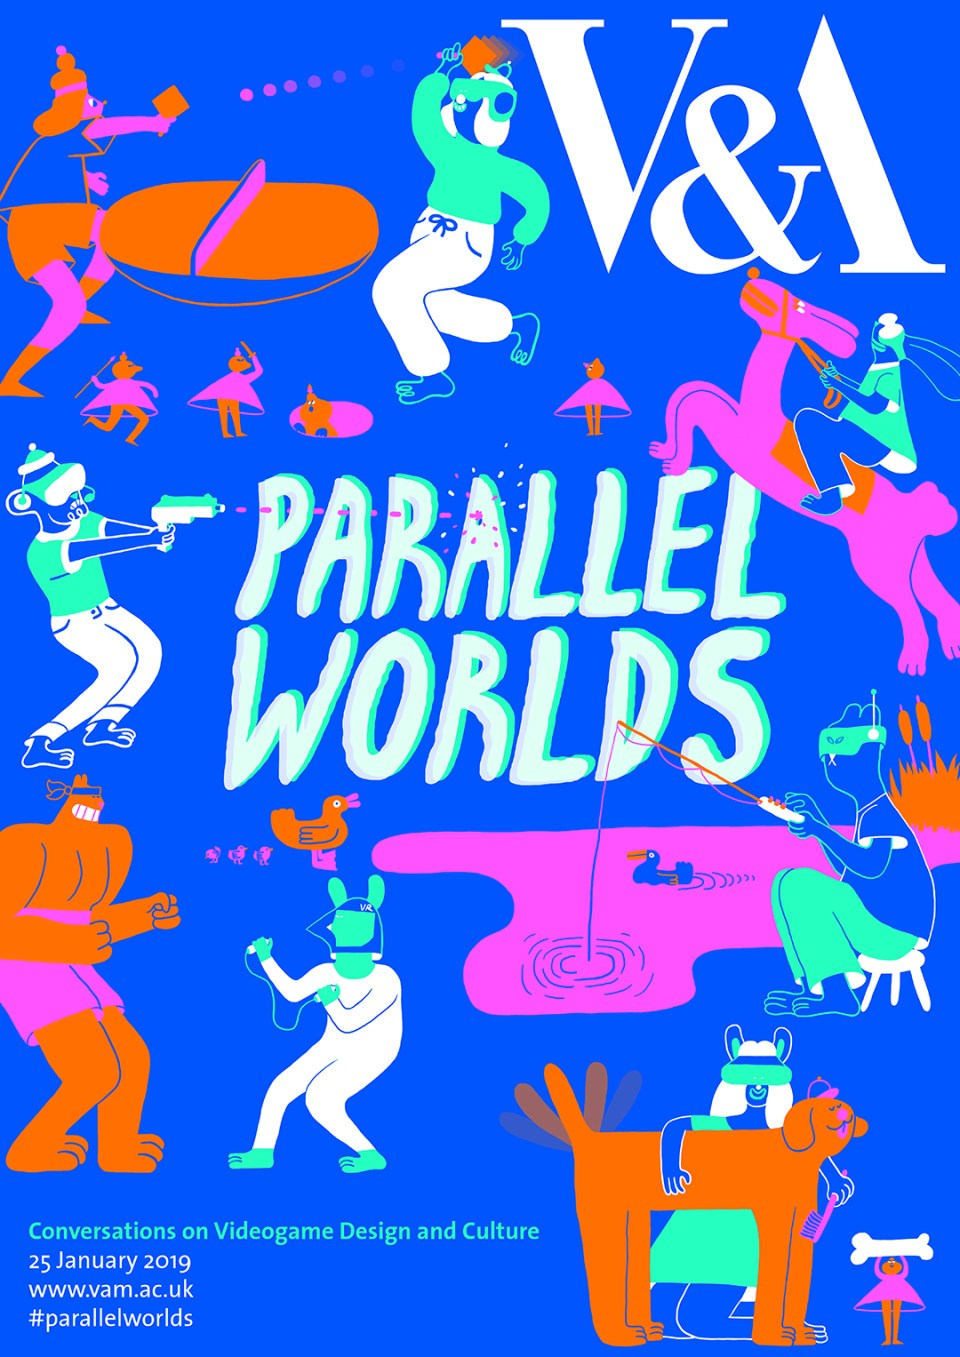 Parallel Worlds 2019 poster design by YUK FUN